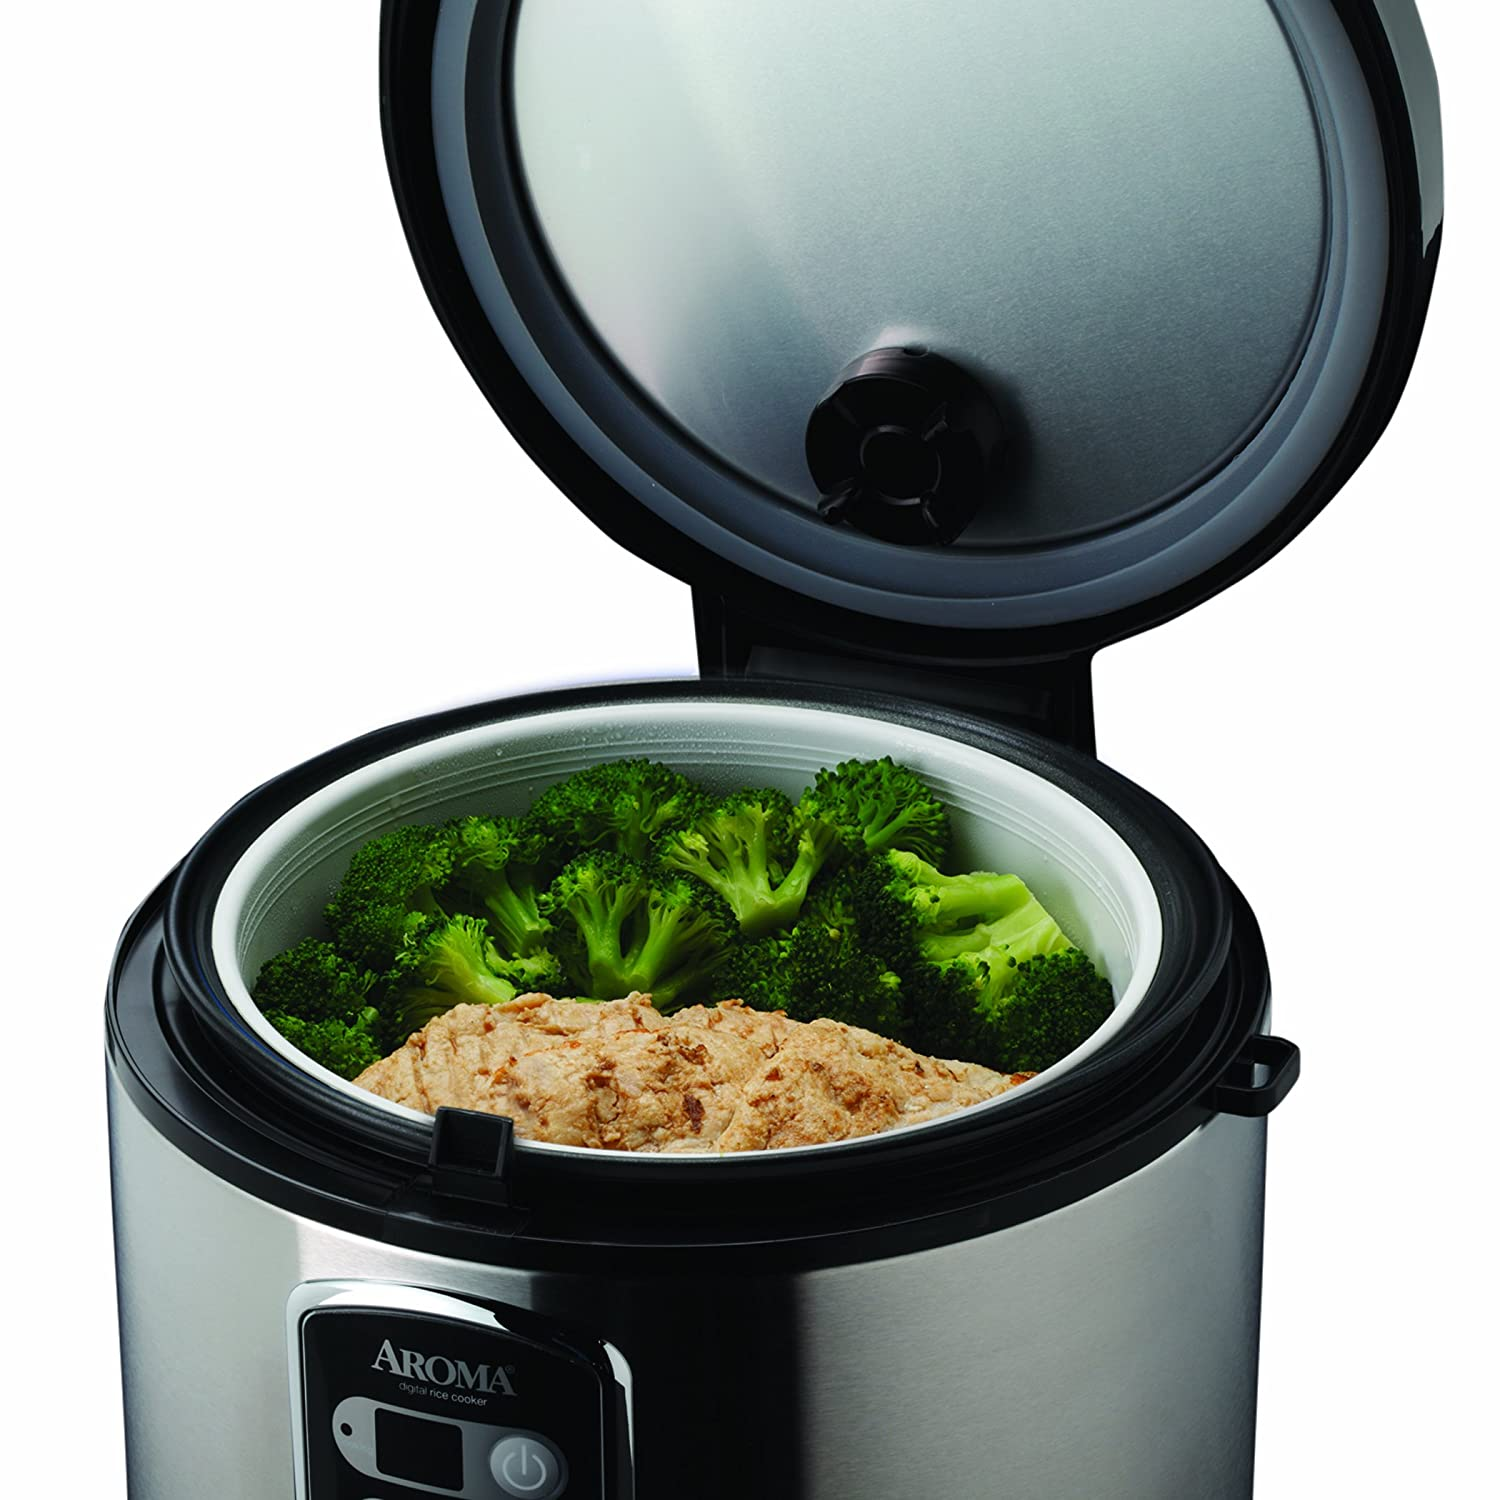 aroma professional 20 cup cooked digital rice cooker and food steamer stainle ebay. Black Bedroom Furniture Sets. Home Design Ideas